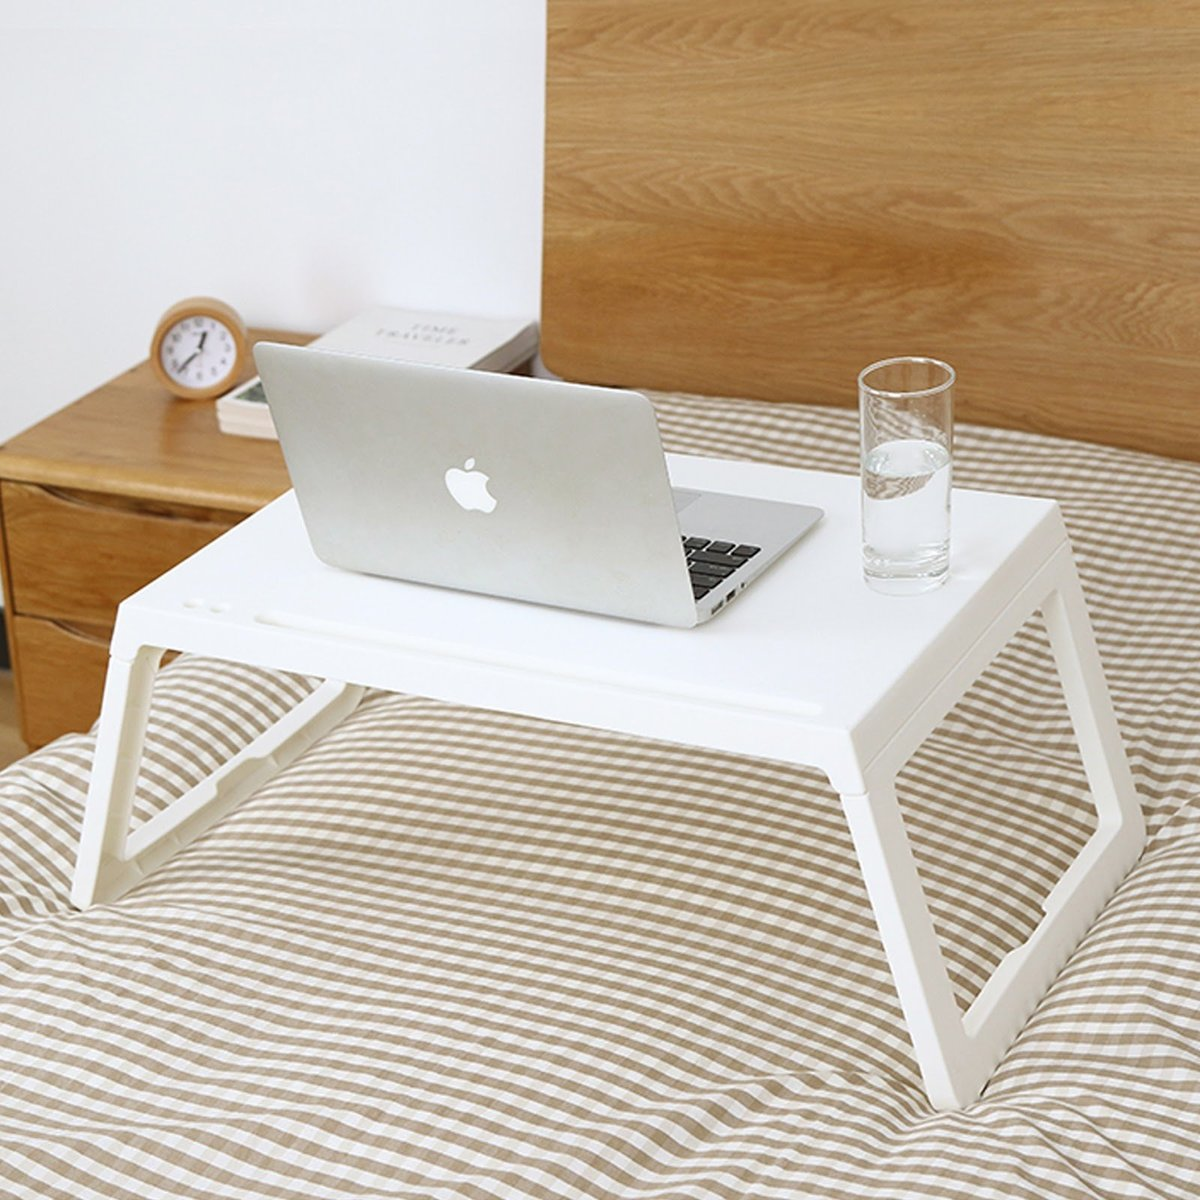 Portable Folding Laptop Notebook Macbook Desk Computer Mobile Table Stand Bed Sofa Tray Holder - 20